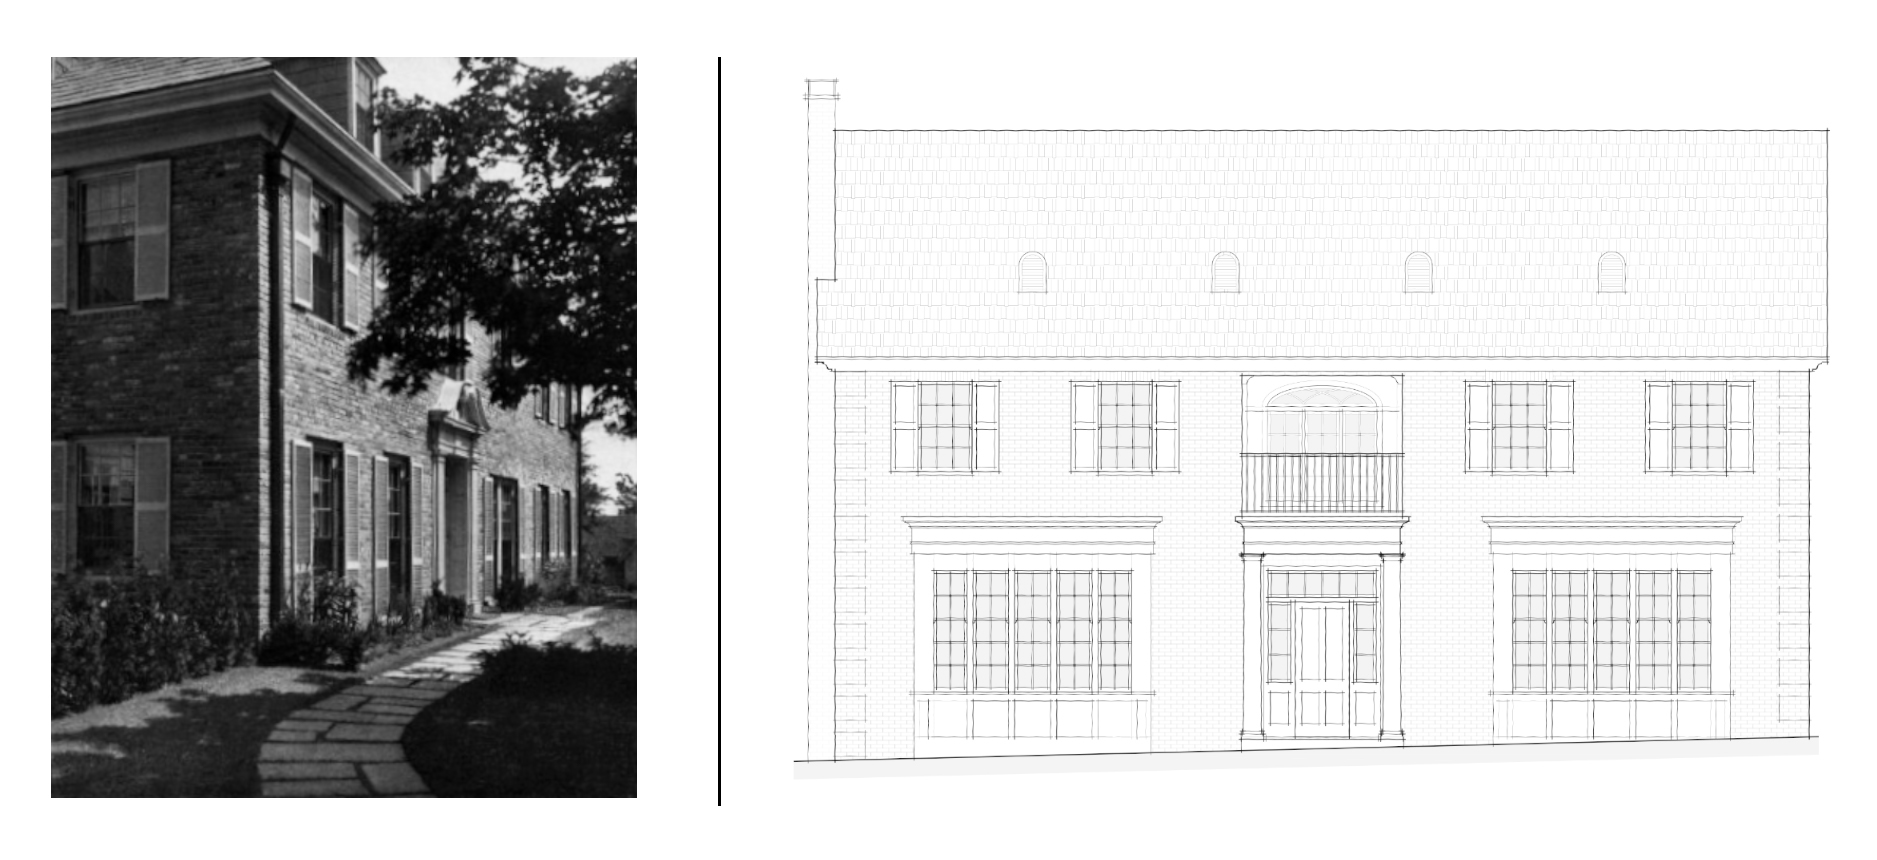 """Our studio is renowned for designing custom """"new-old"""" homes: brand new houses (or significant renovations) that make use of historical precedents but function for modern needs. To achieve the right aesthetic, we sometimes use images of older structures to help shape the concepts for our new designs.  Left:  Concept image of a brick Georgian Revival residence designed by Henry Frost and Eleanor Raymond, as featured in  The House Beautiful Building Annual 1926  (  the APT Building Technology Heritage Library online ).  Right:  A Schematic Design exterior elevation, showing the front facade of the custom new home in Beverly Hills designed by project manager  Katie Peterson ."""